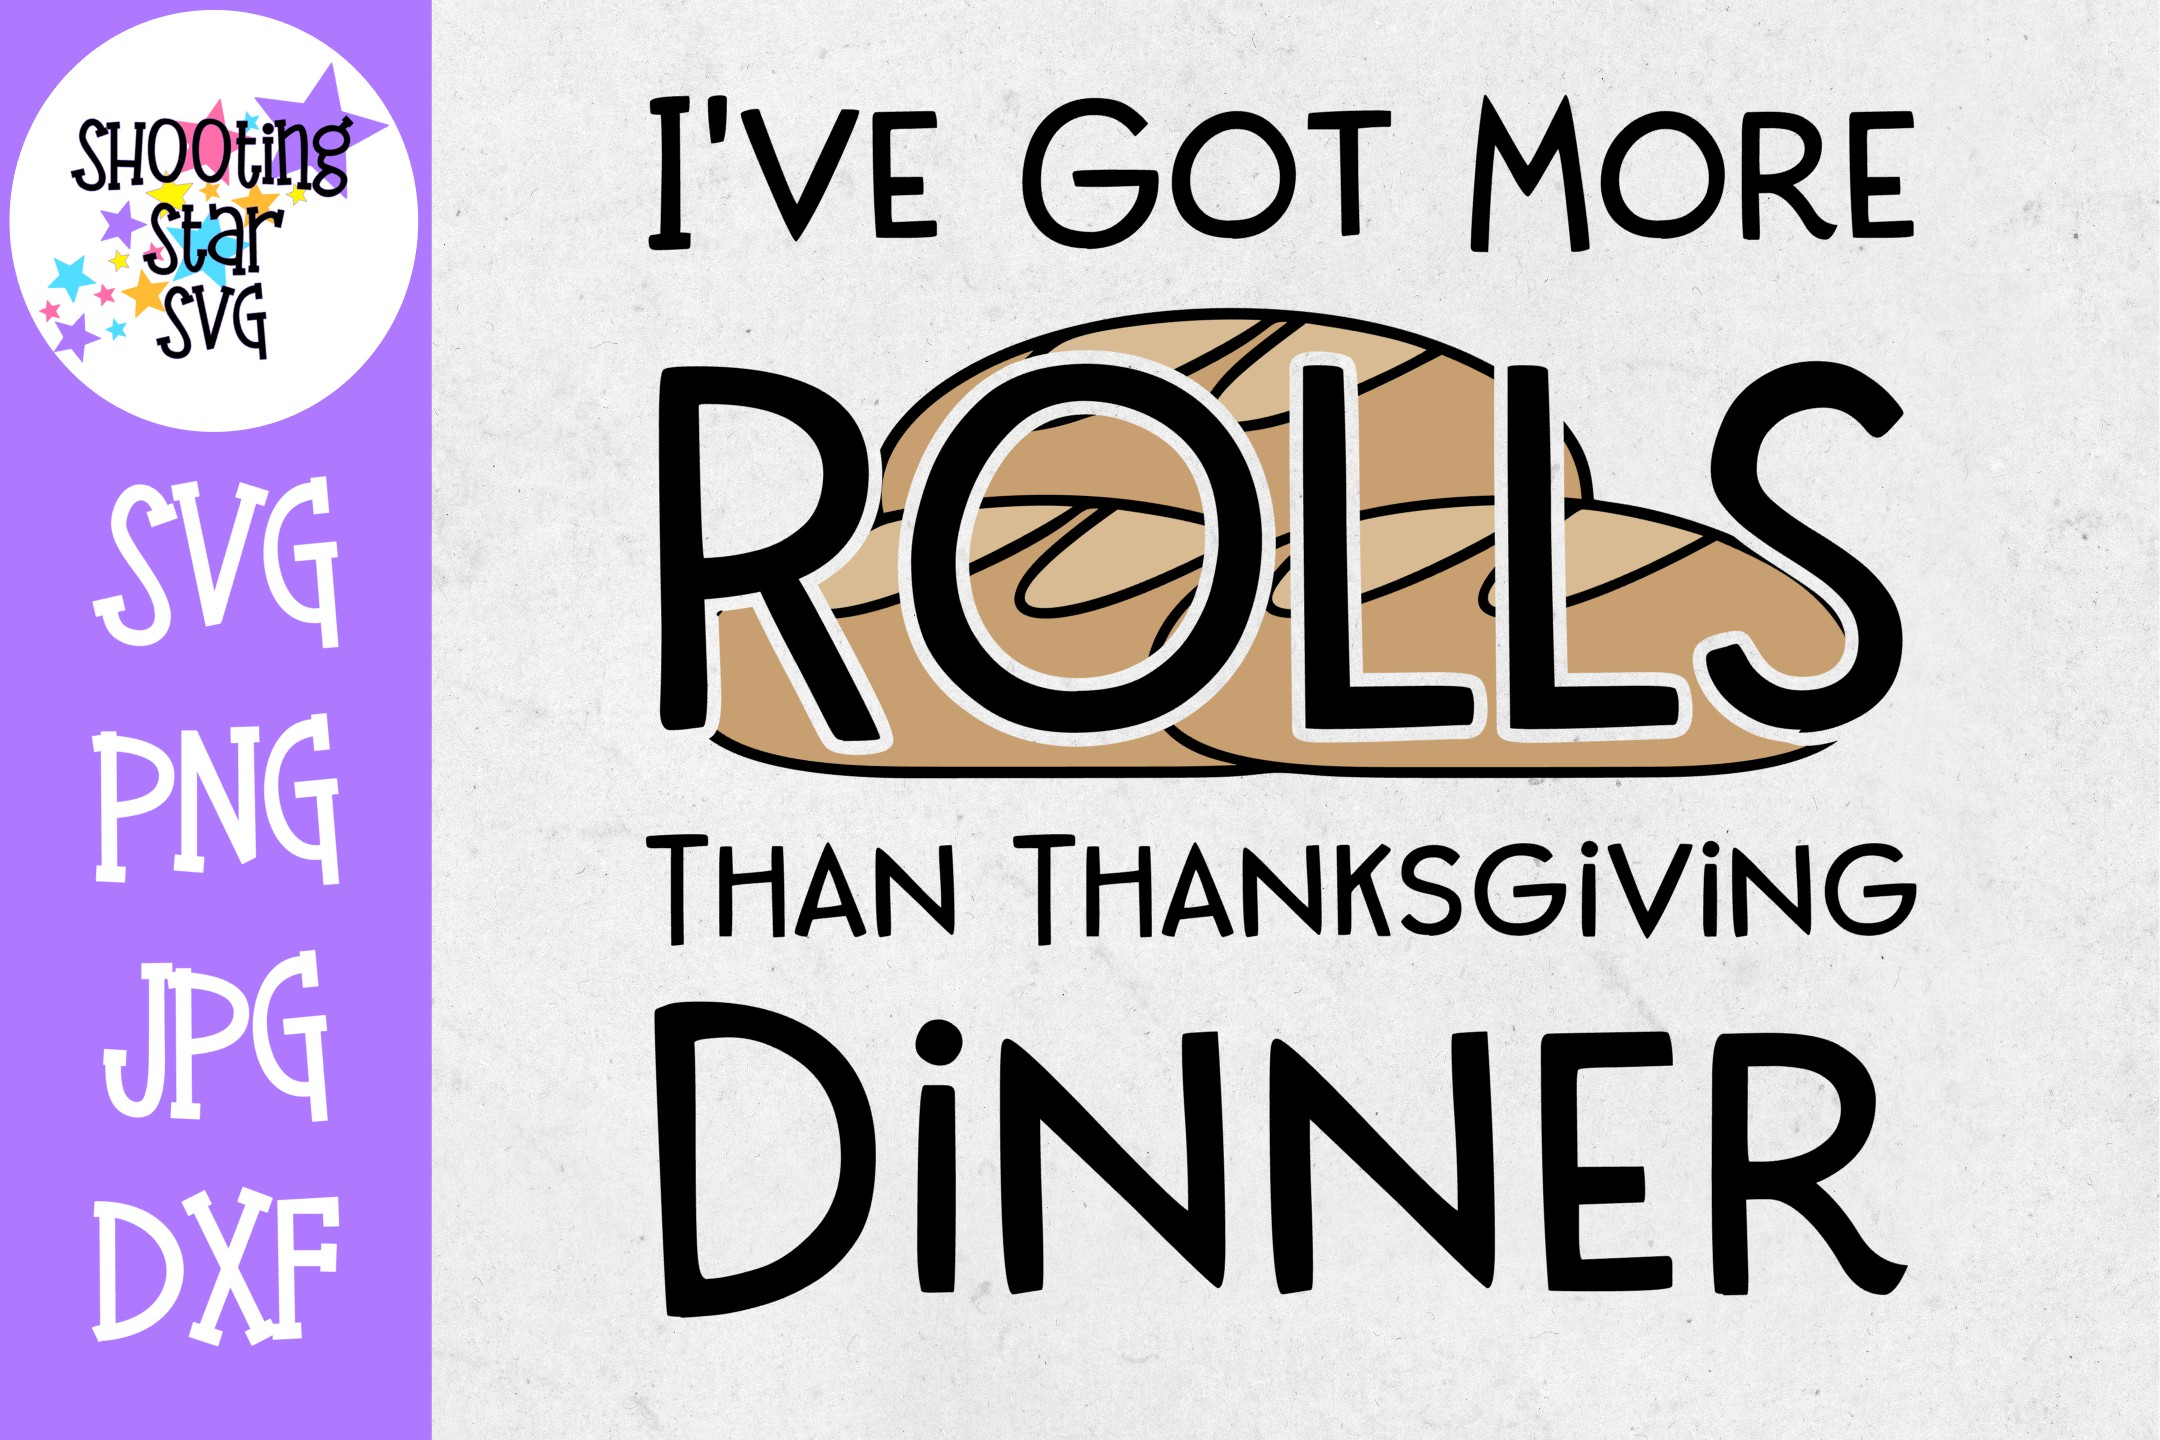 More Rolls Than Thanksgiving Dinner SVG - Thanksgiving SVG example image 1